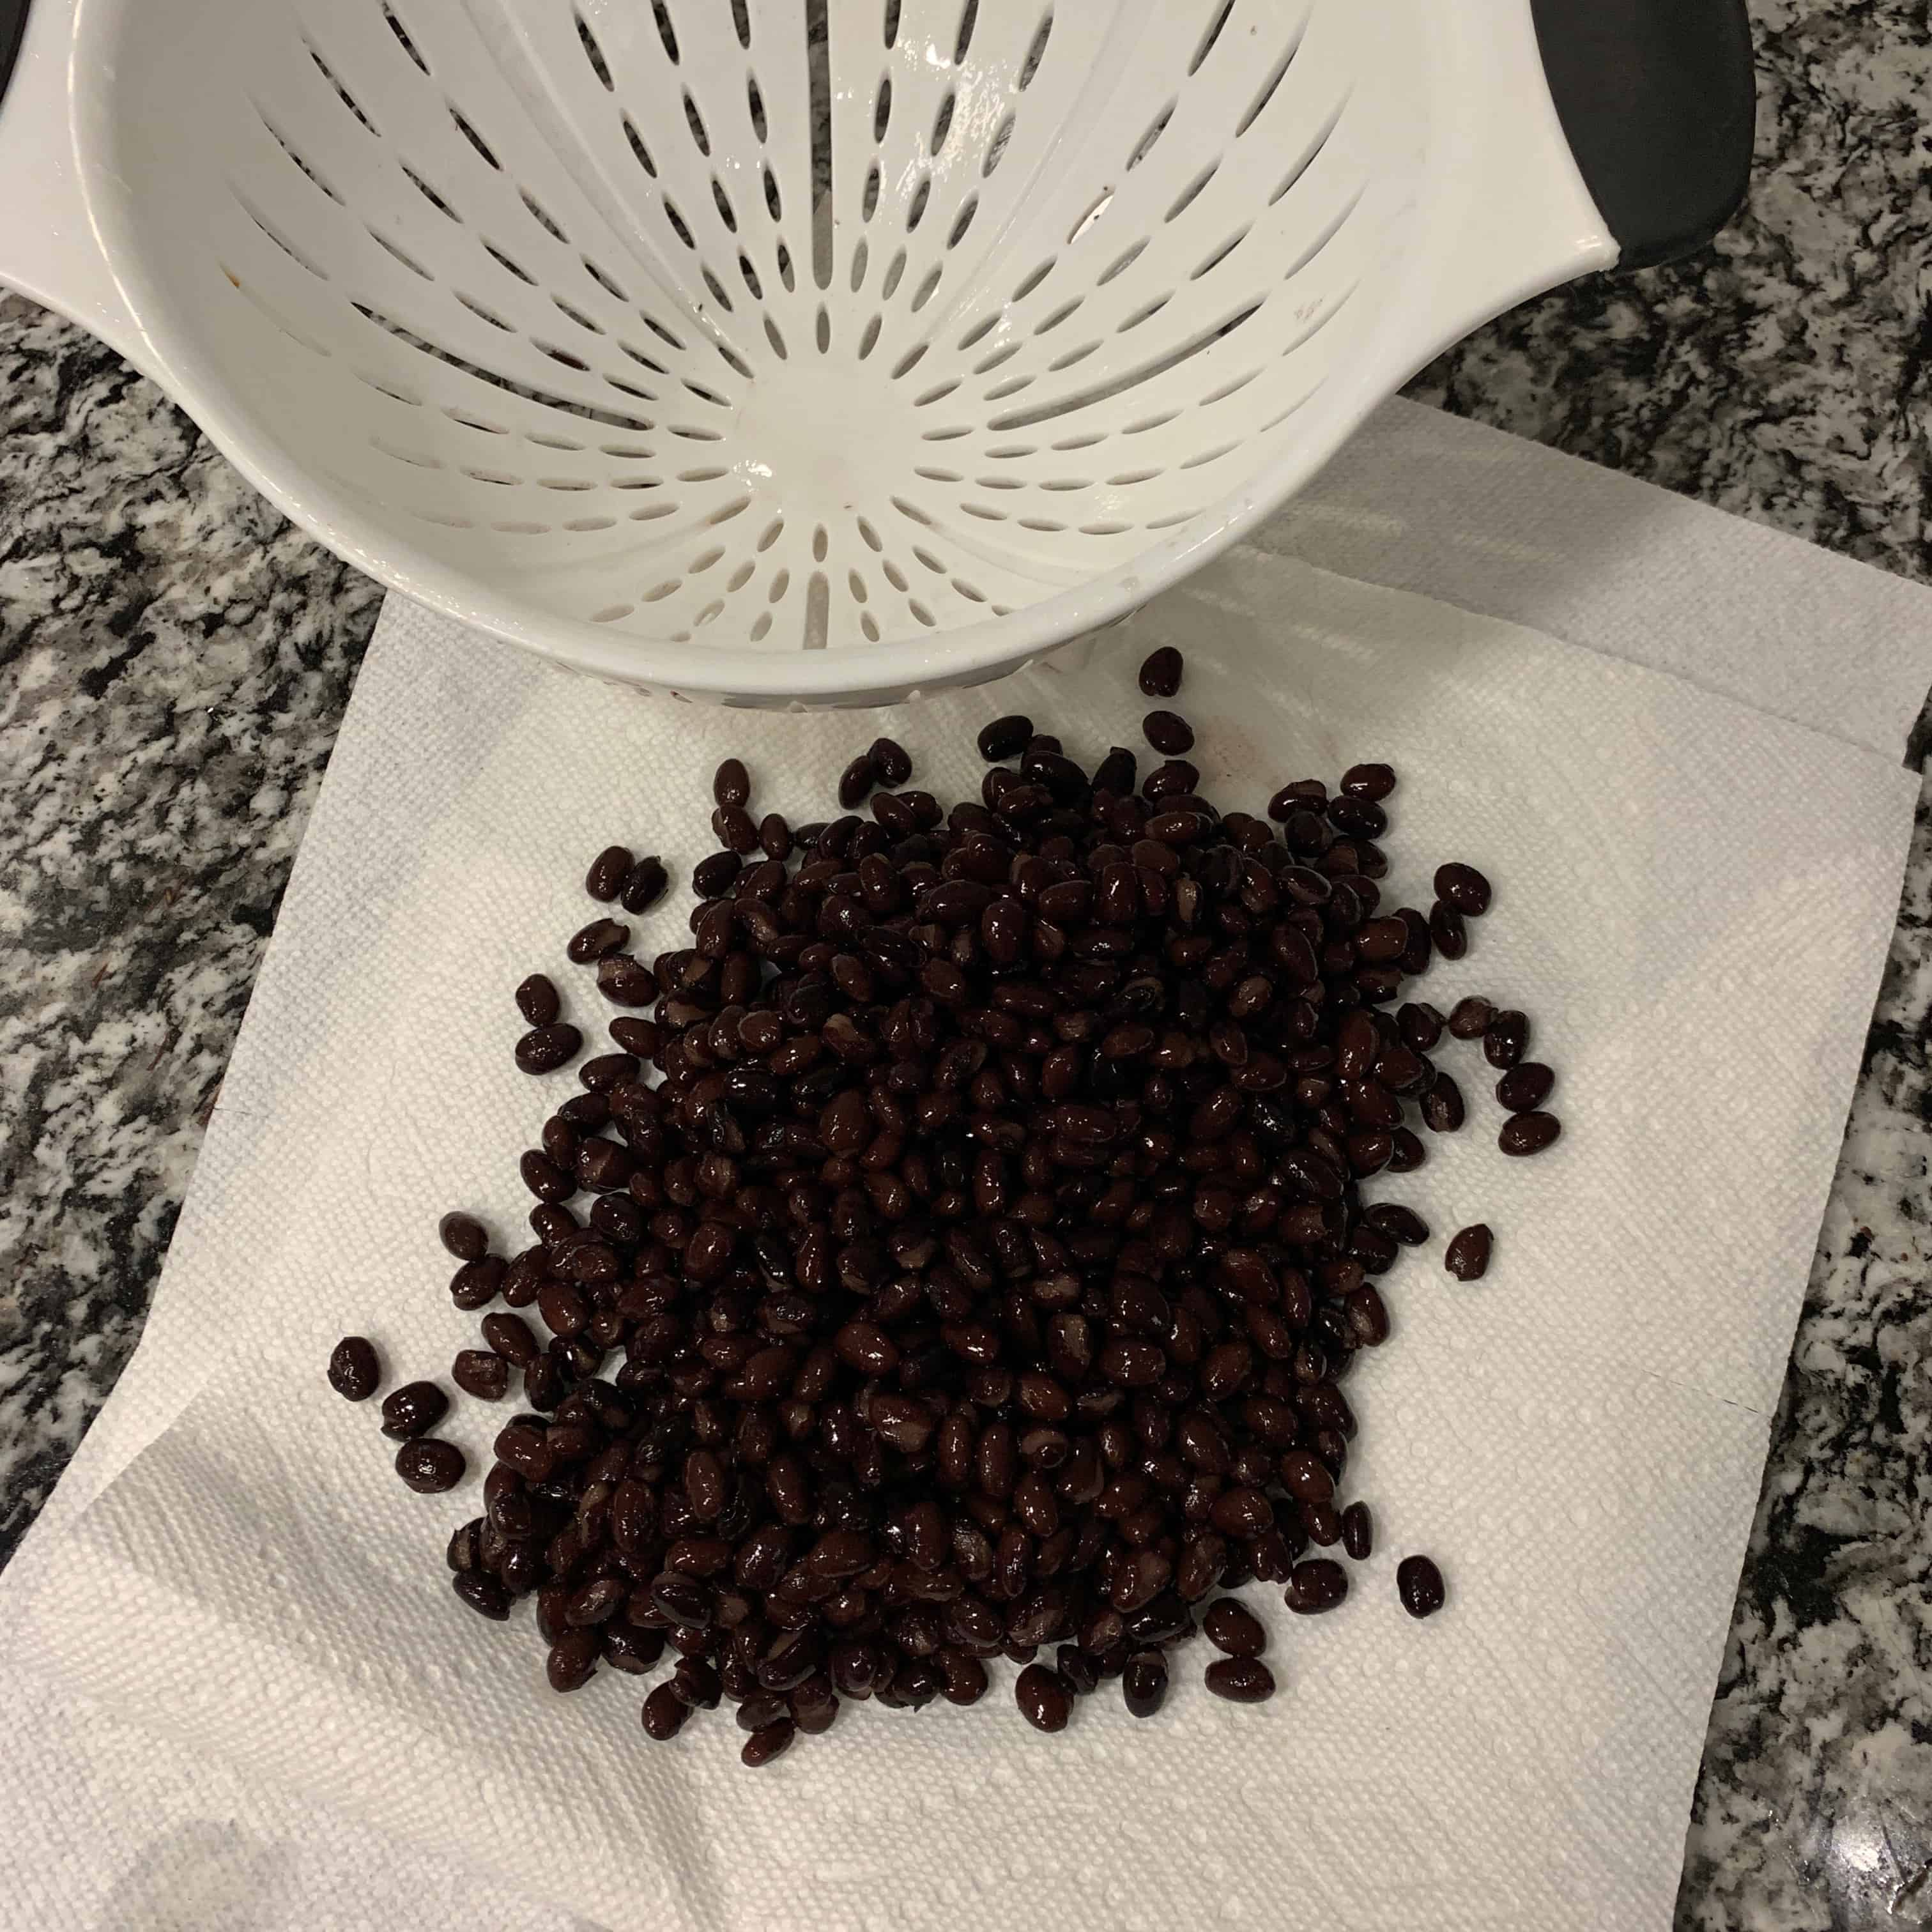 black beans by a colander on paper towels